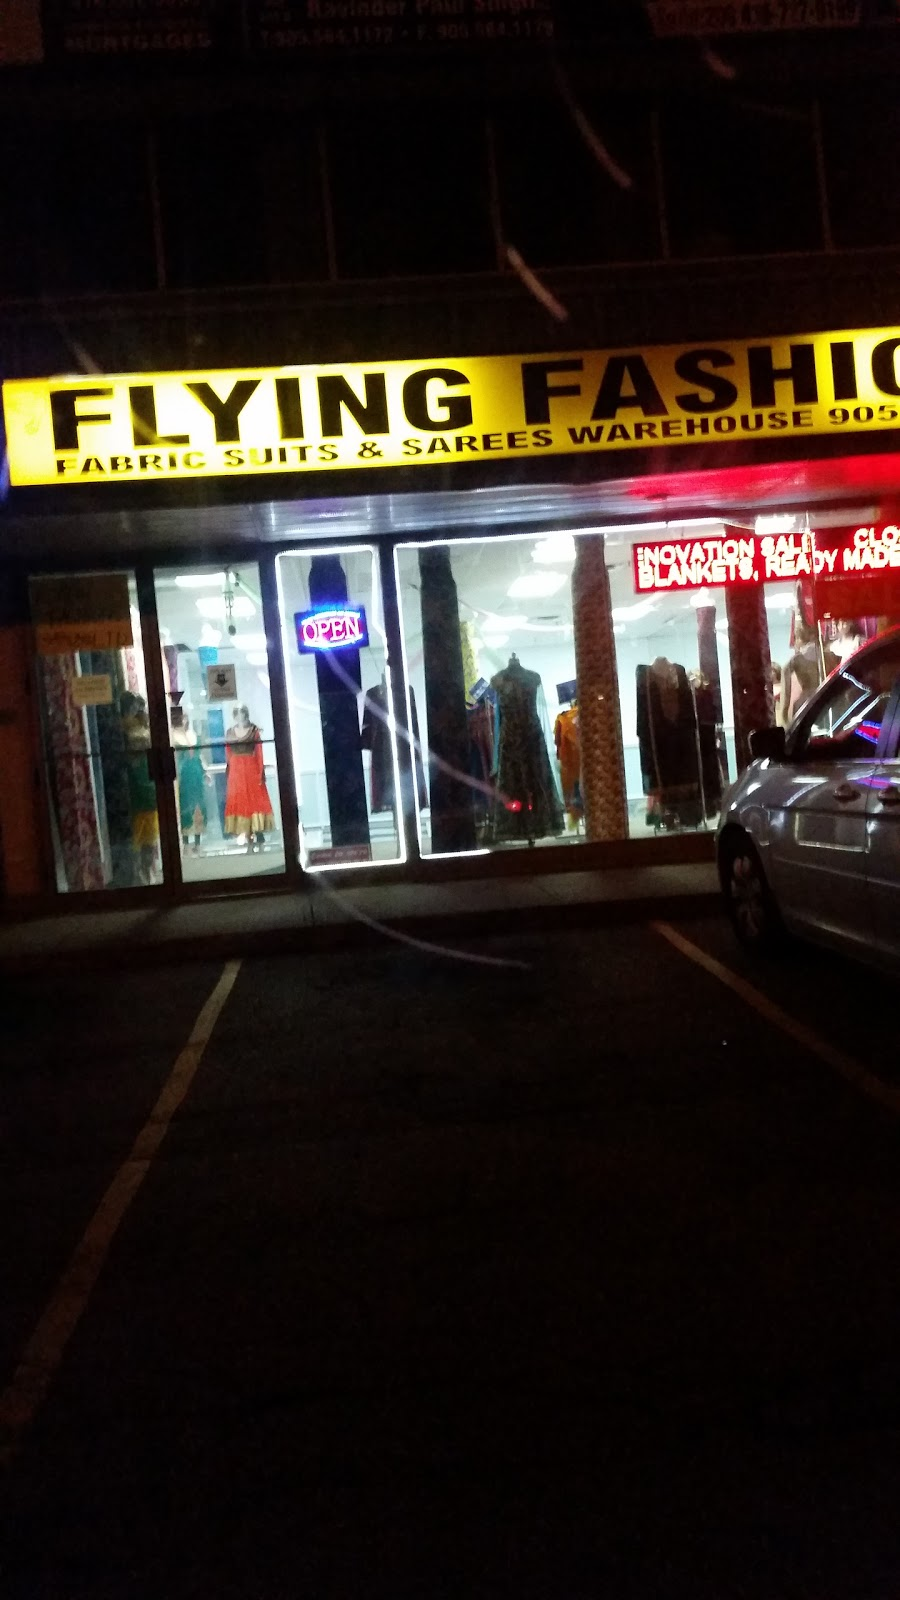 Flying Fashions | clothing store | 7071 Airport Rd, Mississauga, ON L4T 4J3, Canada | 9056949797 OR +1 905-694-9797